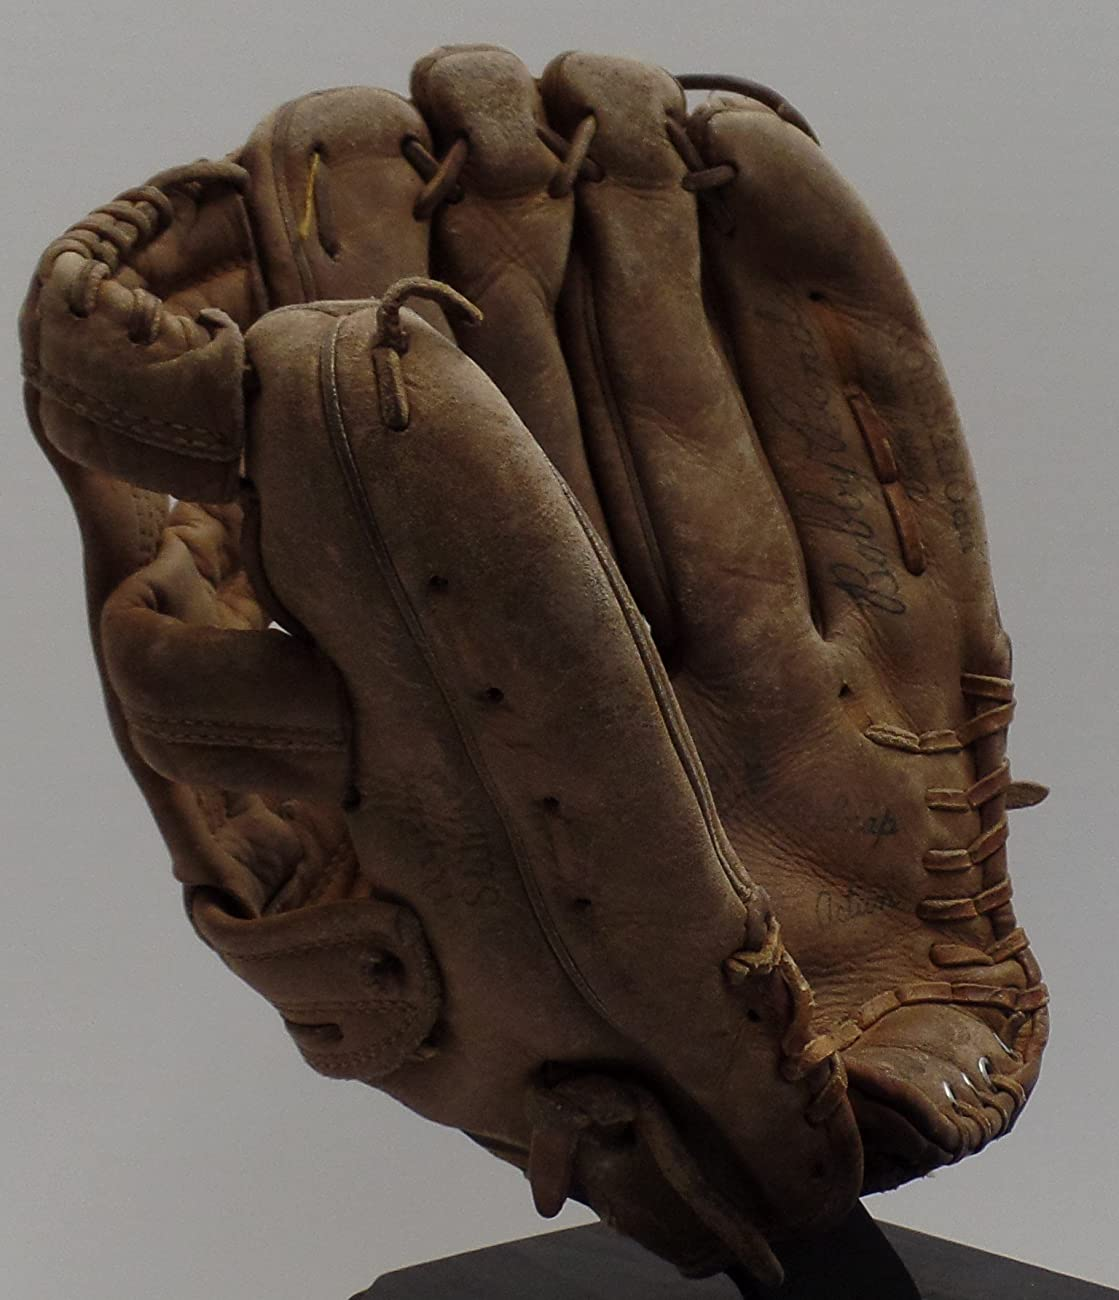 Vintage Bobby Bonds Pro Style Baseball Glove - Wilson Right Hand Thrower (Great for Display - Could Be Used Everyday) Free Shipping & Tracking 6